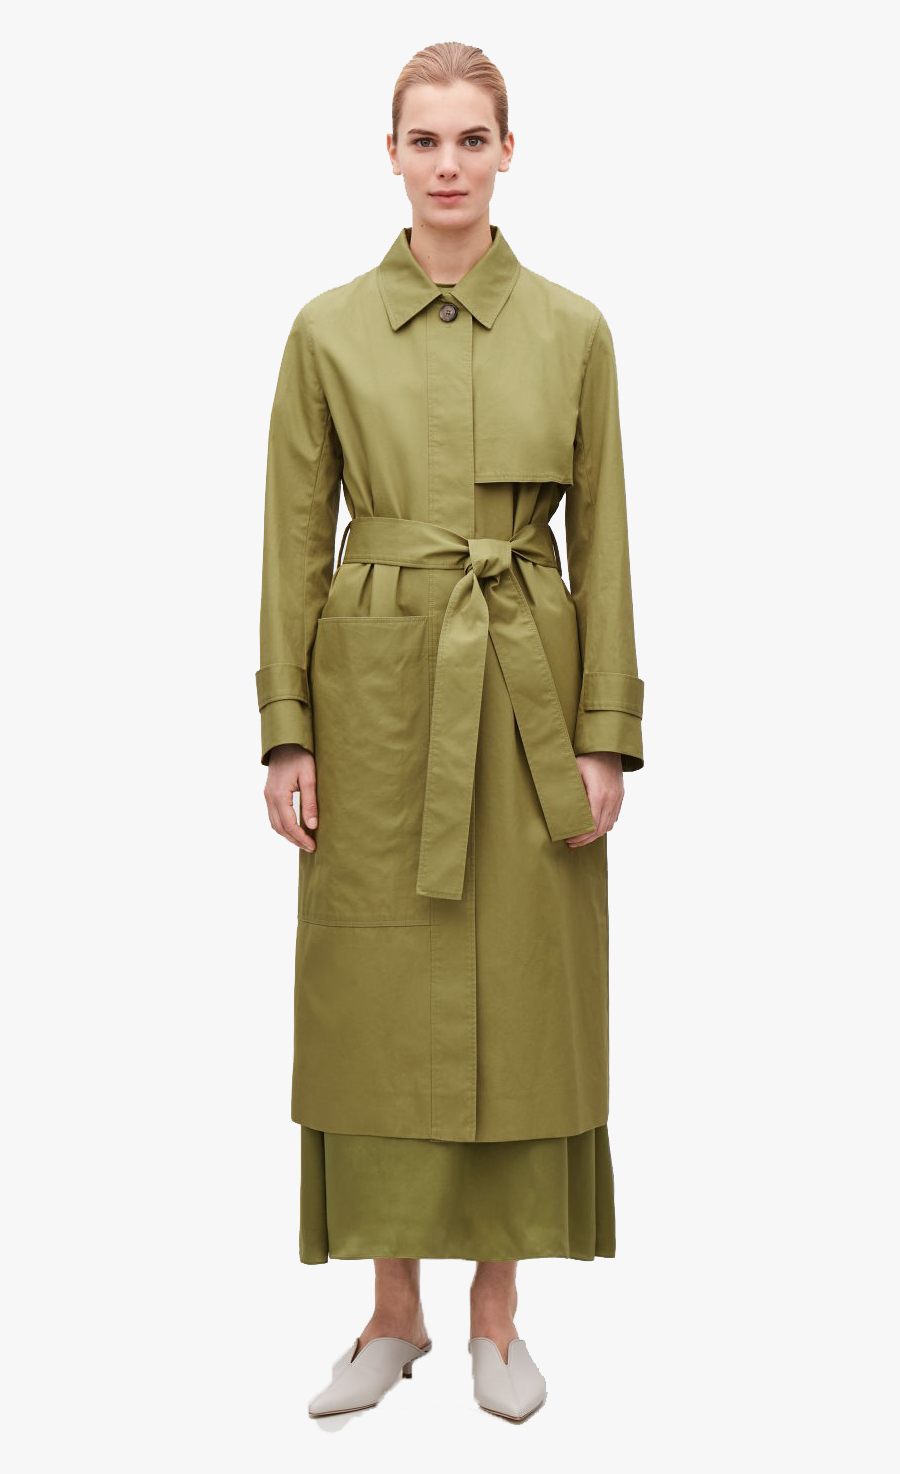 Trench Coat For Women Png Image Download - Cos Green Trench Coat, Transparent Clipart